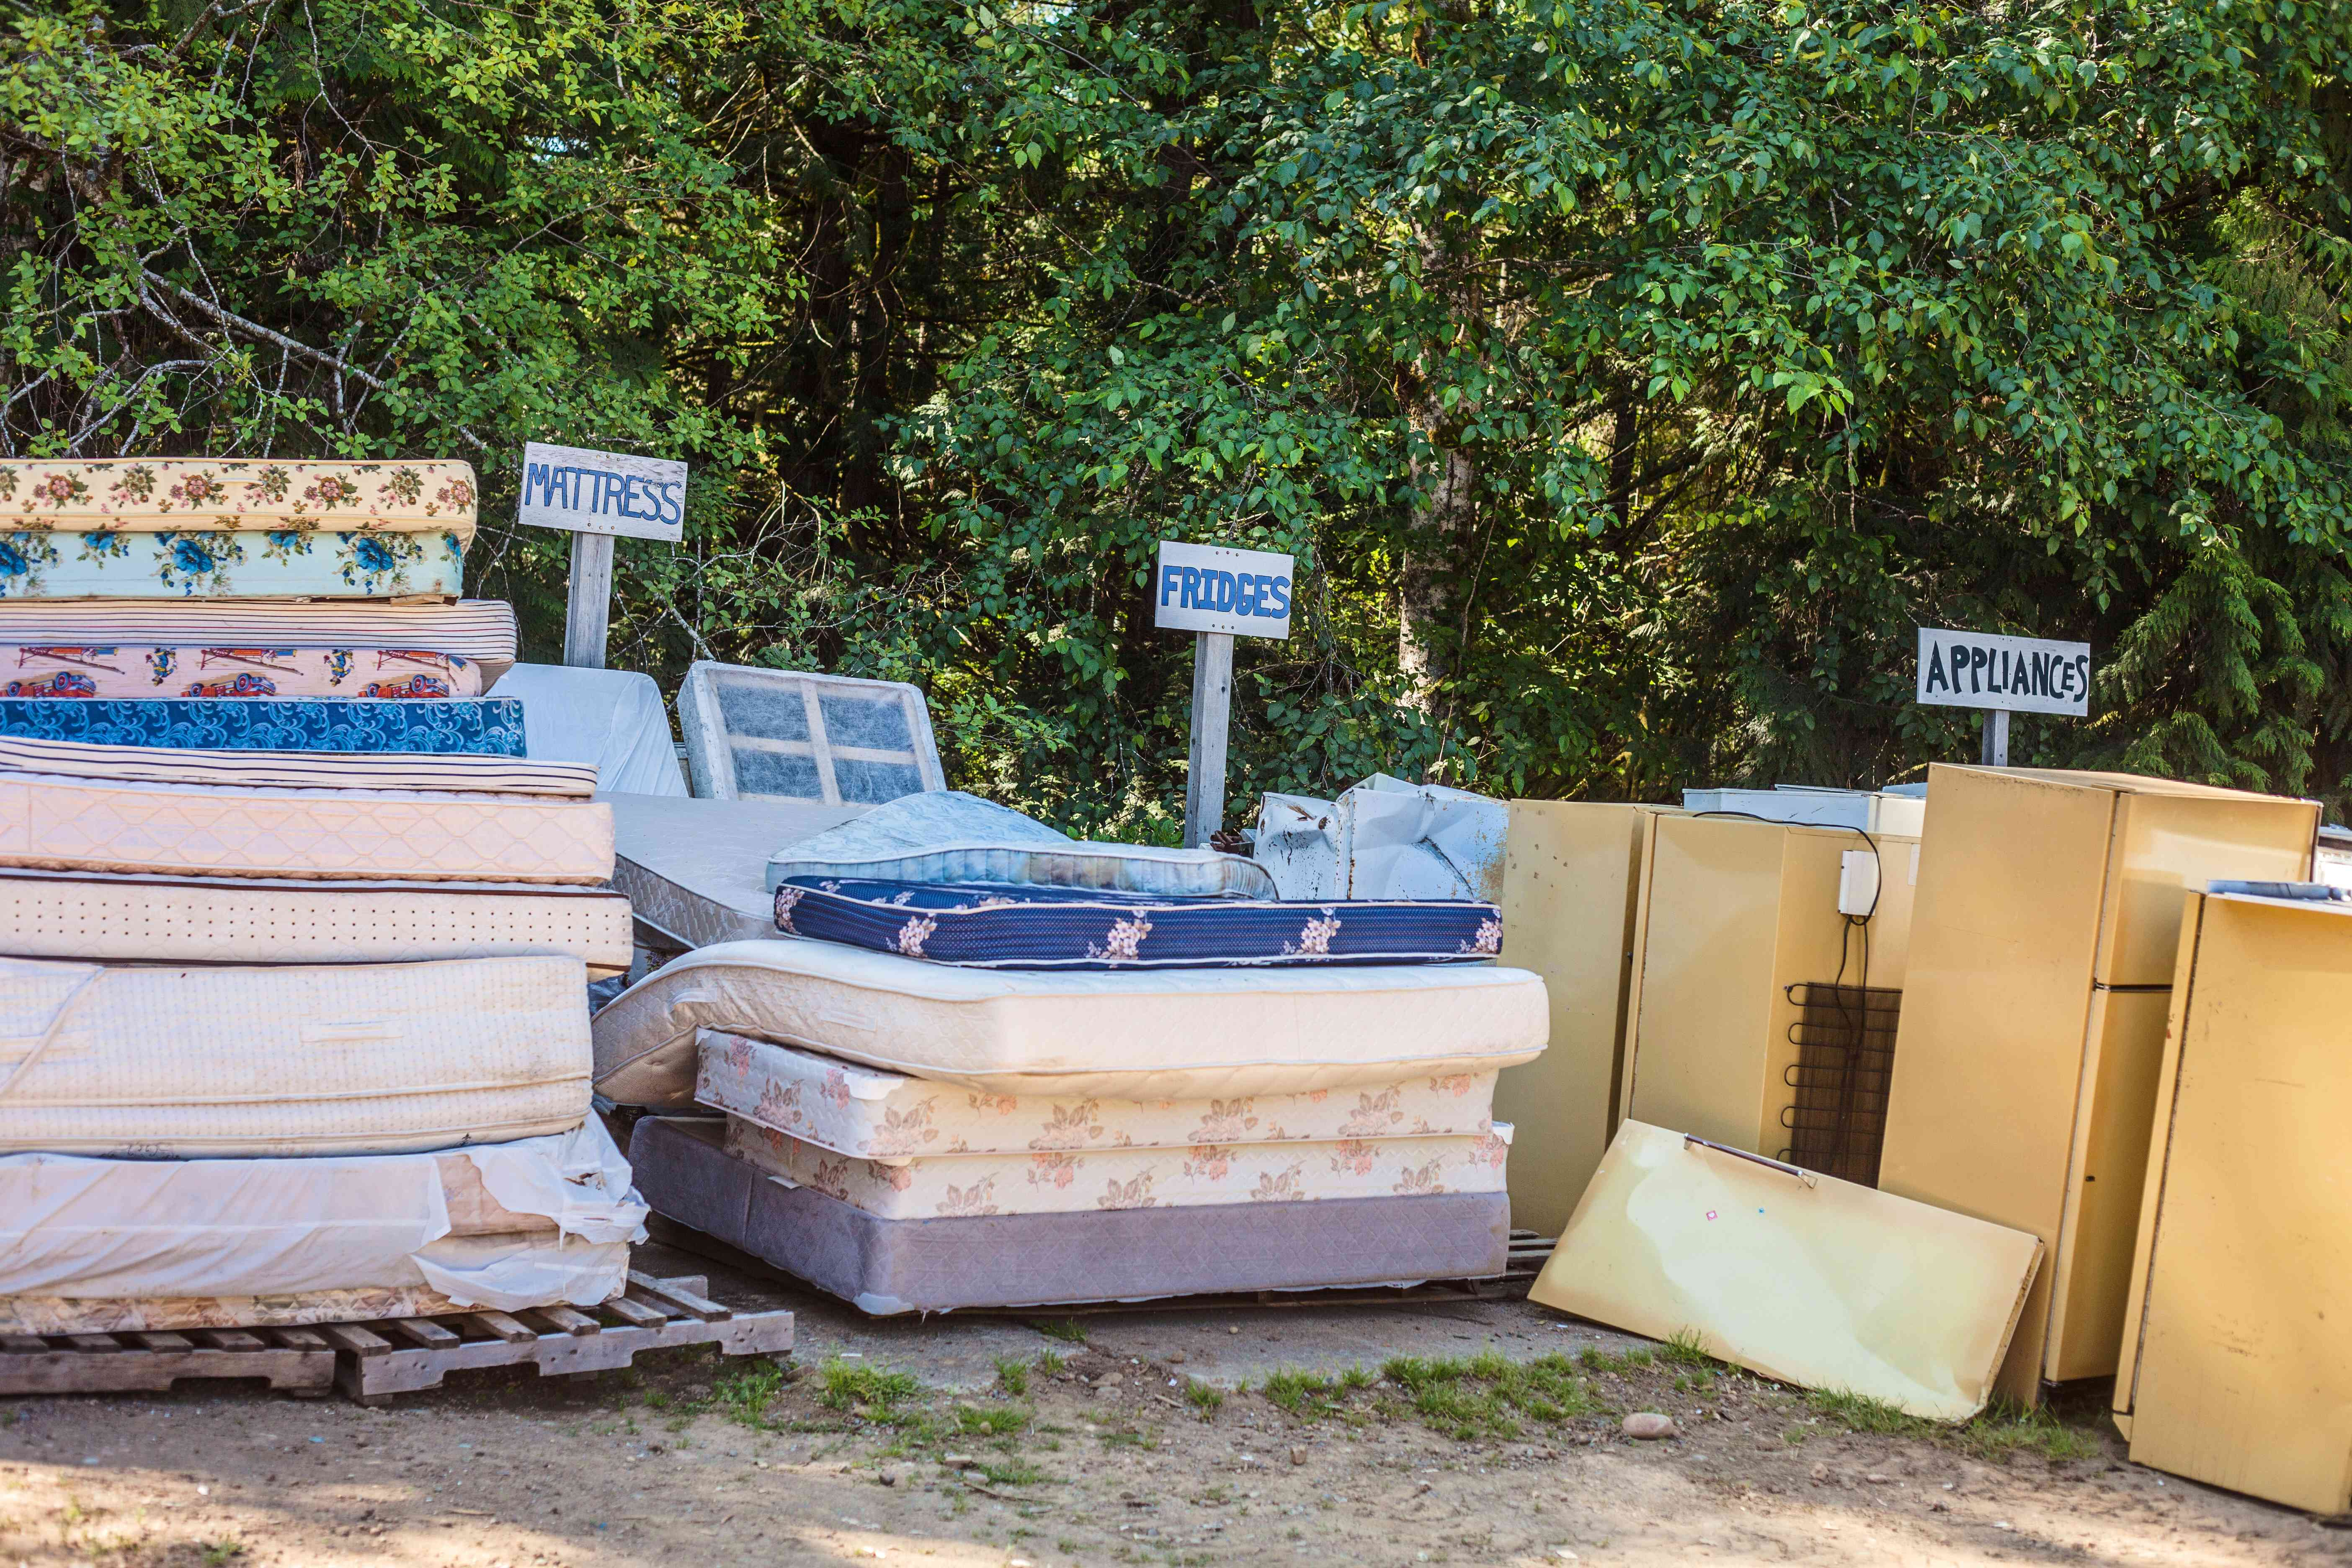 Old Mattresses and Appliances